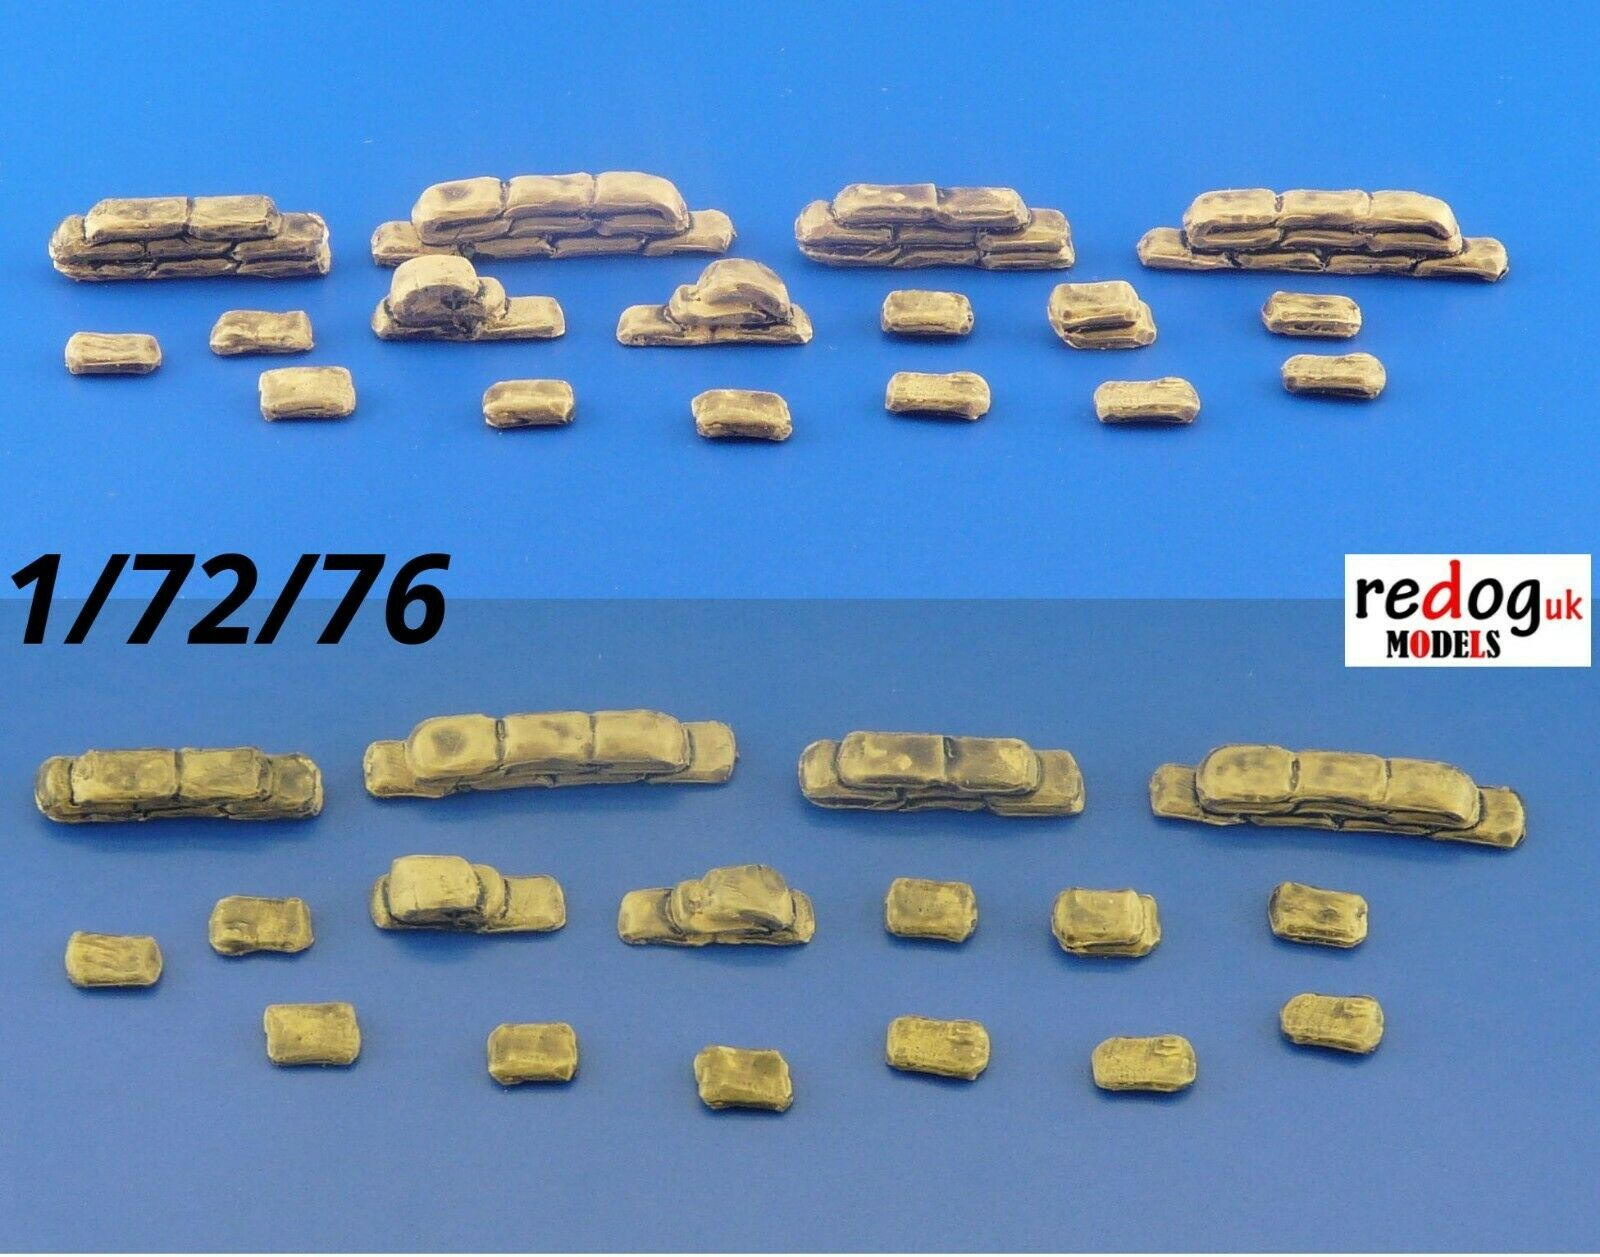 1/72 Sand Bags for Trenches Set Military Scale Modelling Stowage Diorama Accessorises - redoguk